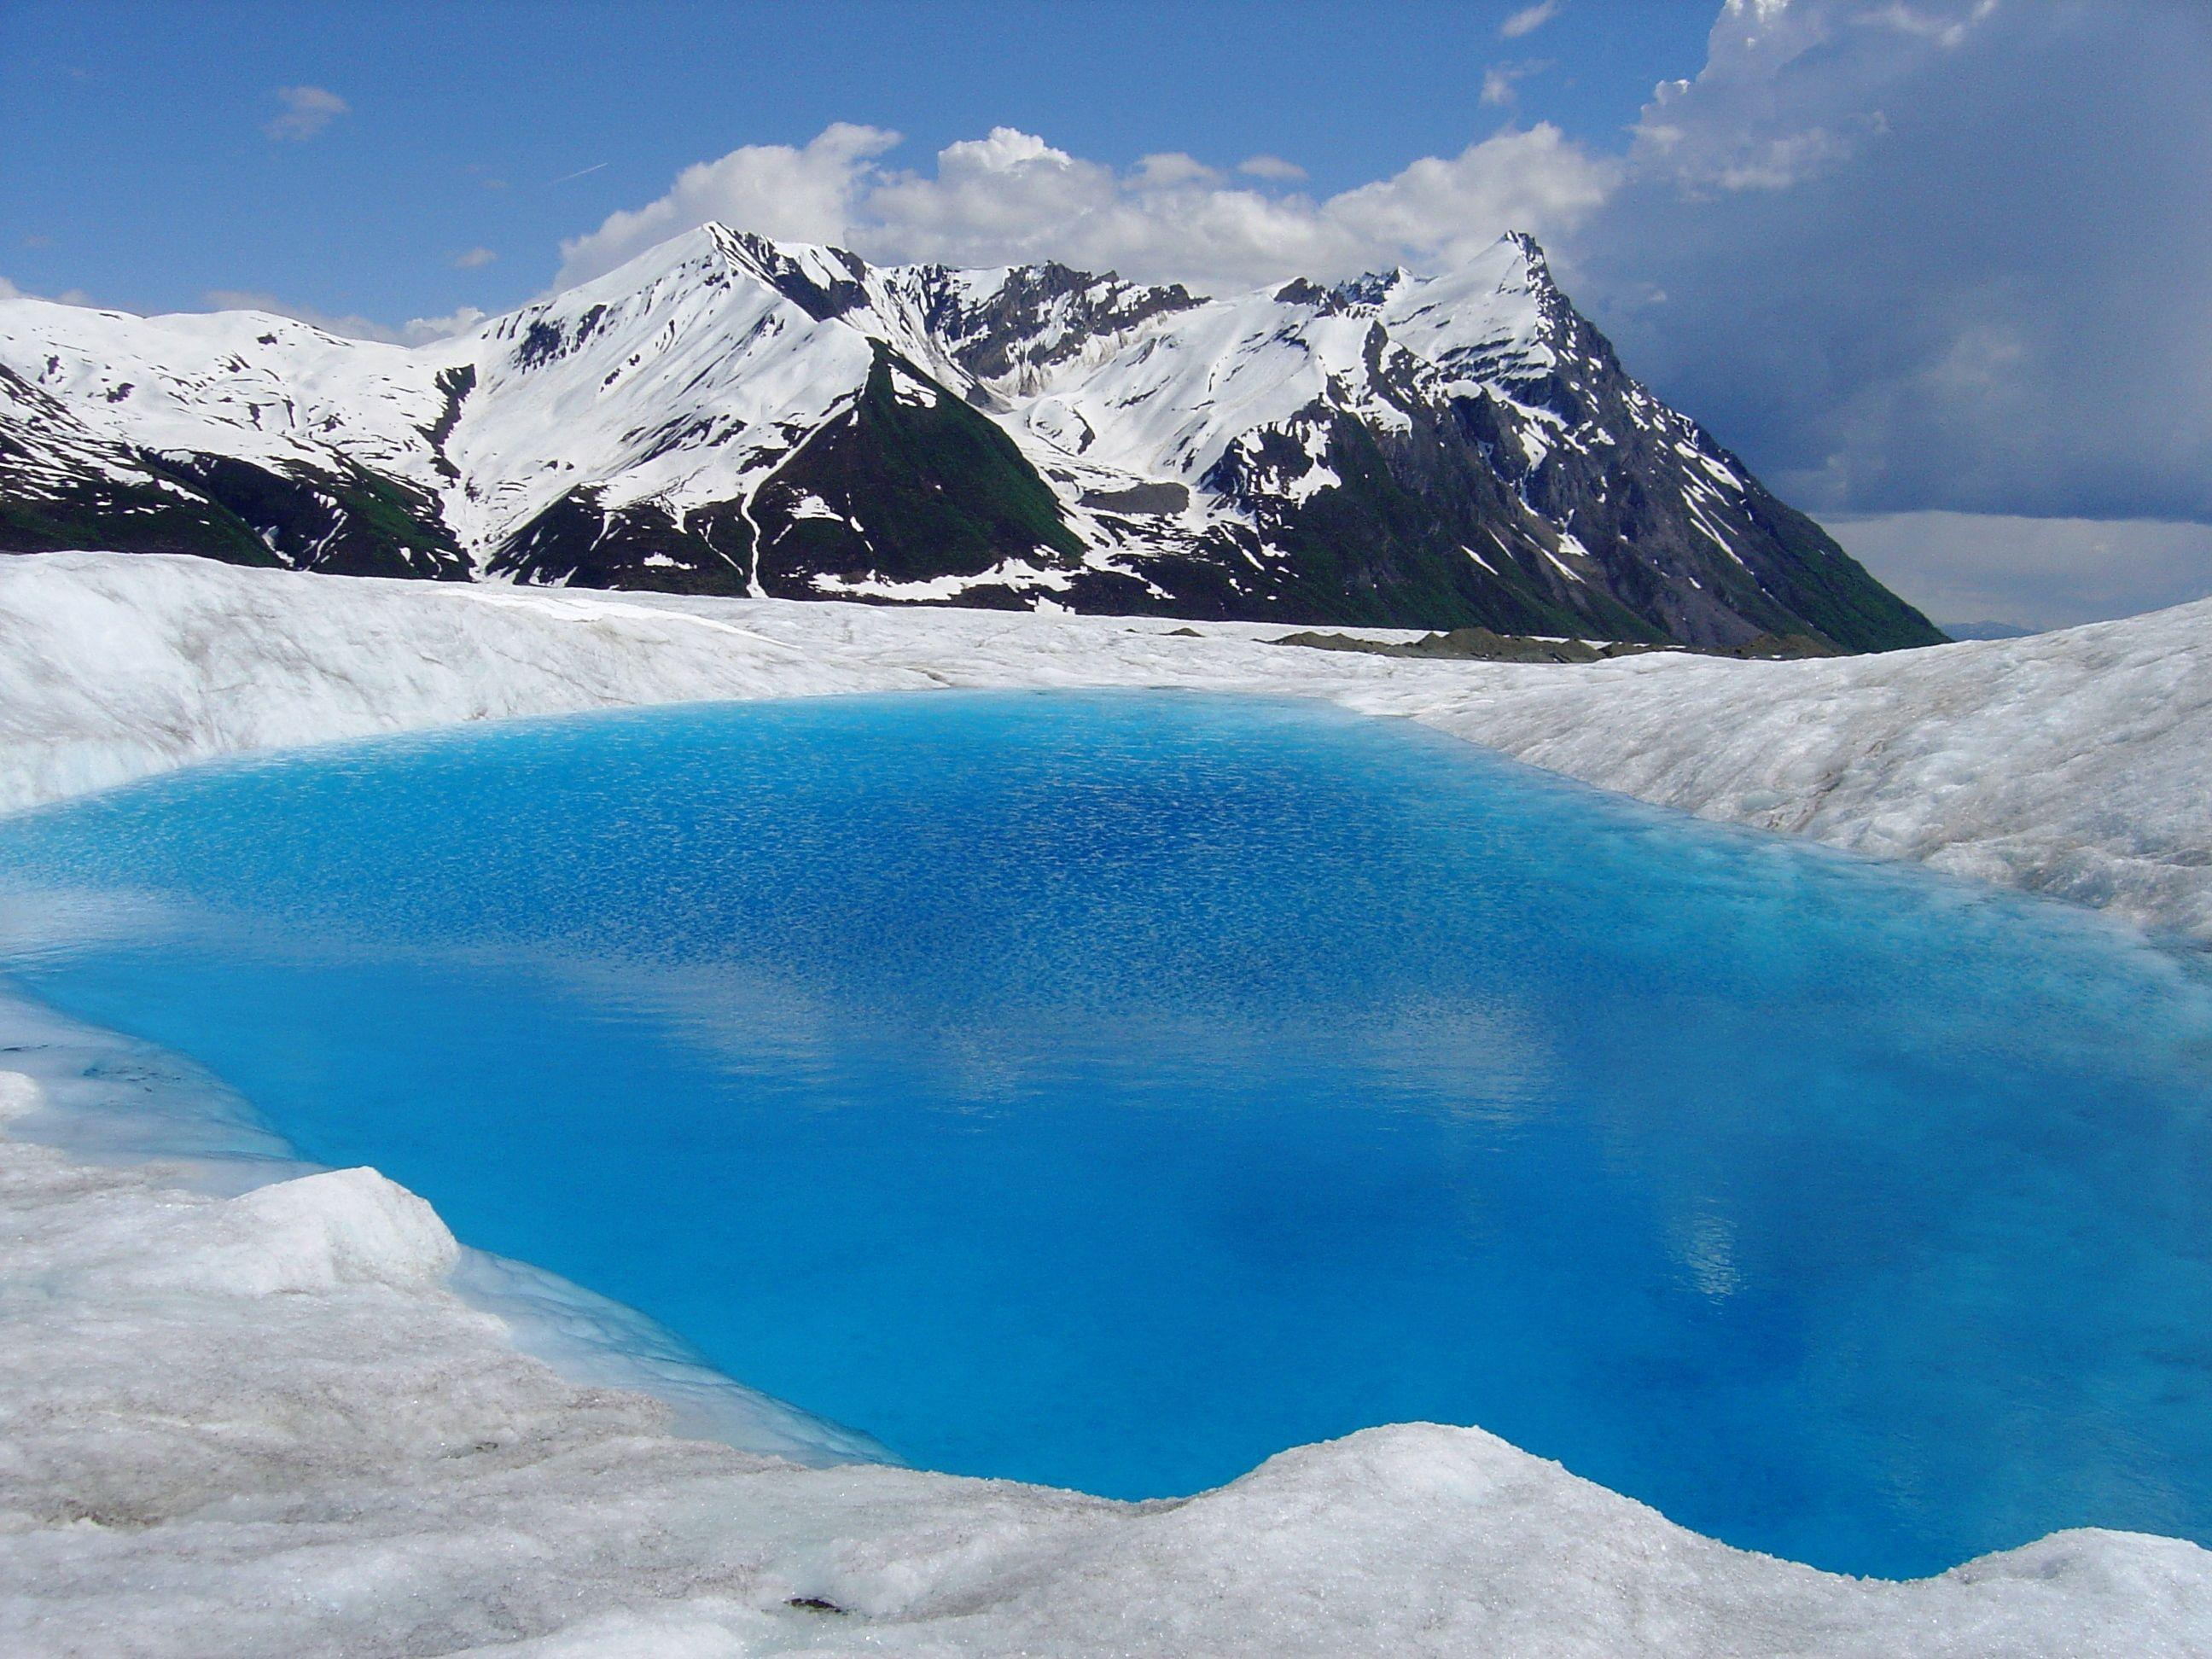 File:Blue glacial pool in Wrangell-St. Elias National Park ...